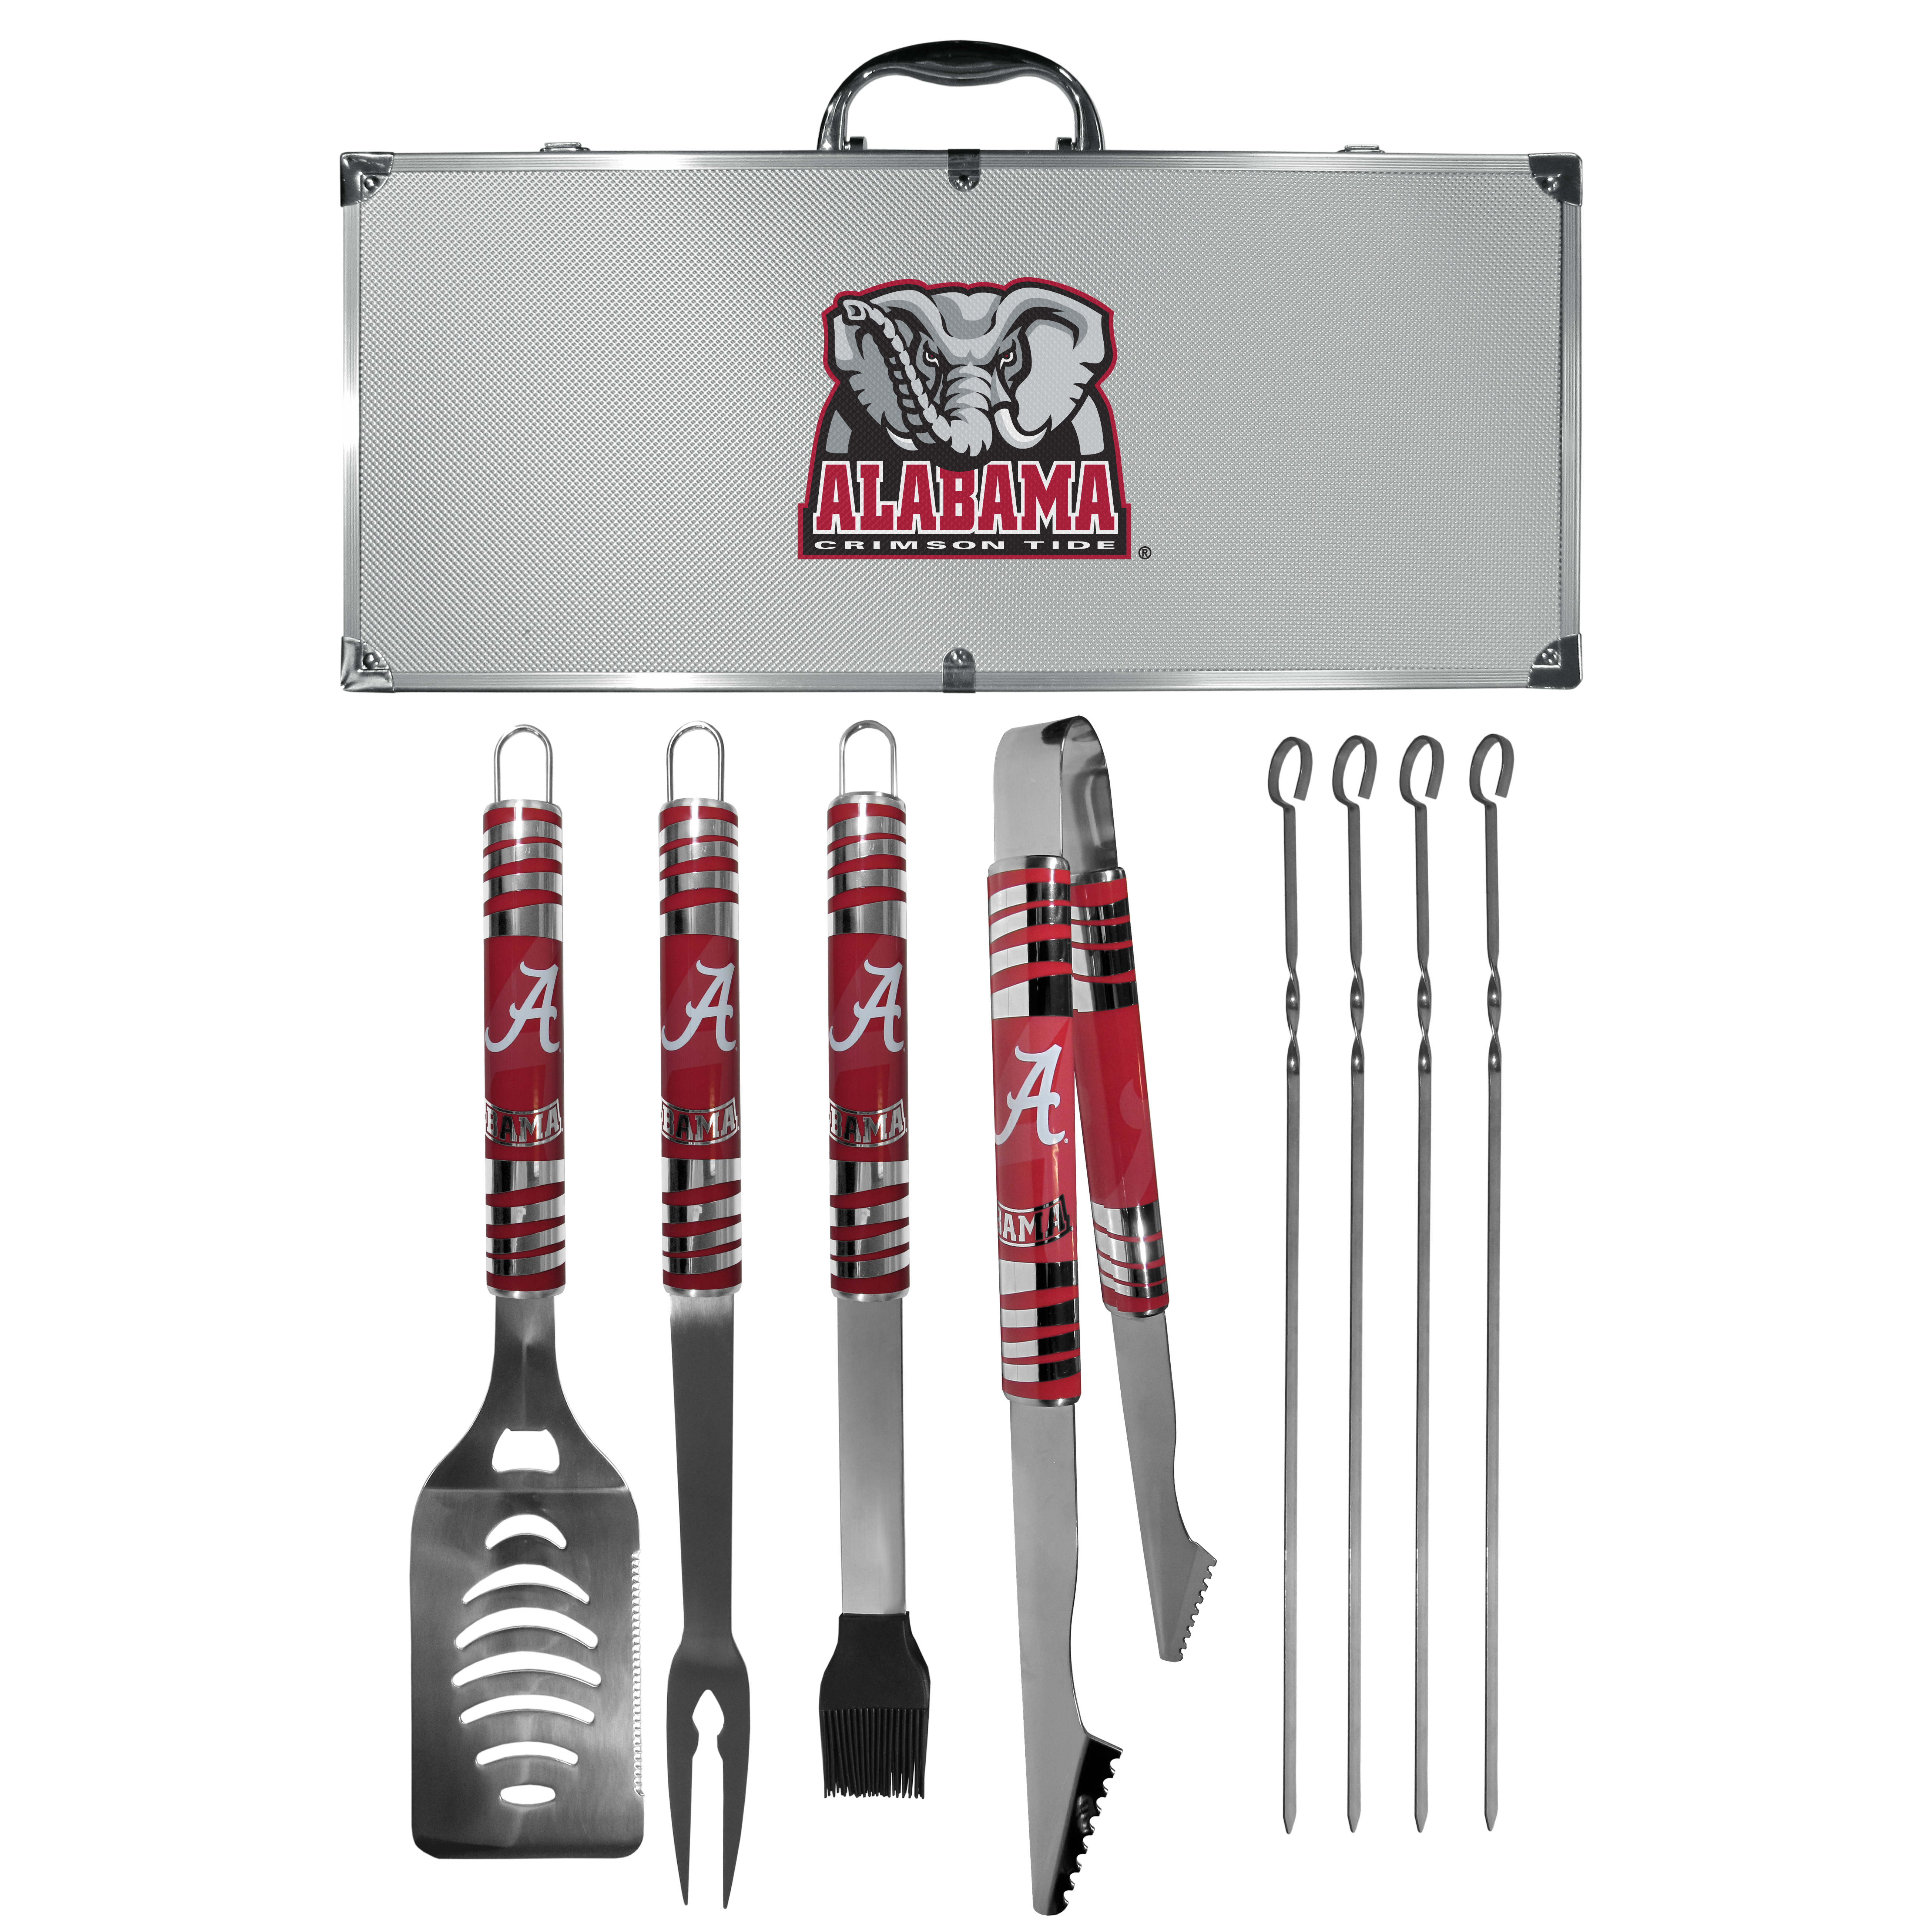 Alabama Crimson Tide 8 pc Tailgater BBQ Set - This is the ultimate Alabama Crimson Tide tailgate accessory! The high quality, 420 grade stainless steel tools are durable and well-made enough to make even the pickiest grill master smile. This complete grill accessory kit includes; 4 skewers, spatula with bottle opener and serrated knife edge, basting brush, tongs and a fork. The 18 inch metal carrying case is perfect for great outdoor use making grilling an ease while camping, tailgating or while having a game day party on your patio. The tools are 17 inches long and feature vivid team graphics. The metal case features a large team emblem with exceptional detail. This high-end men's gift is sure to be a hit as a present on Father's Day or Christmas.